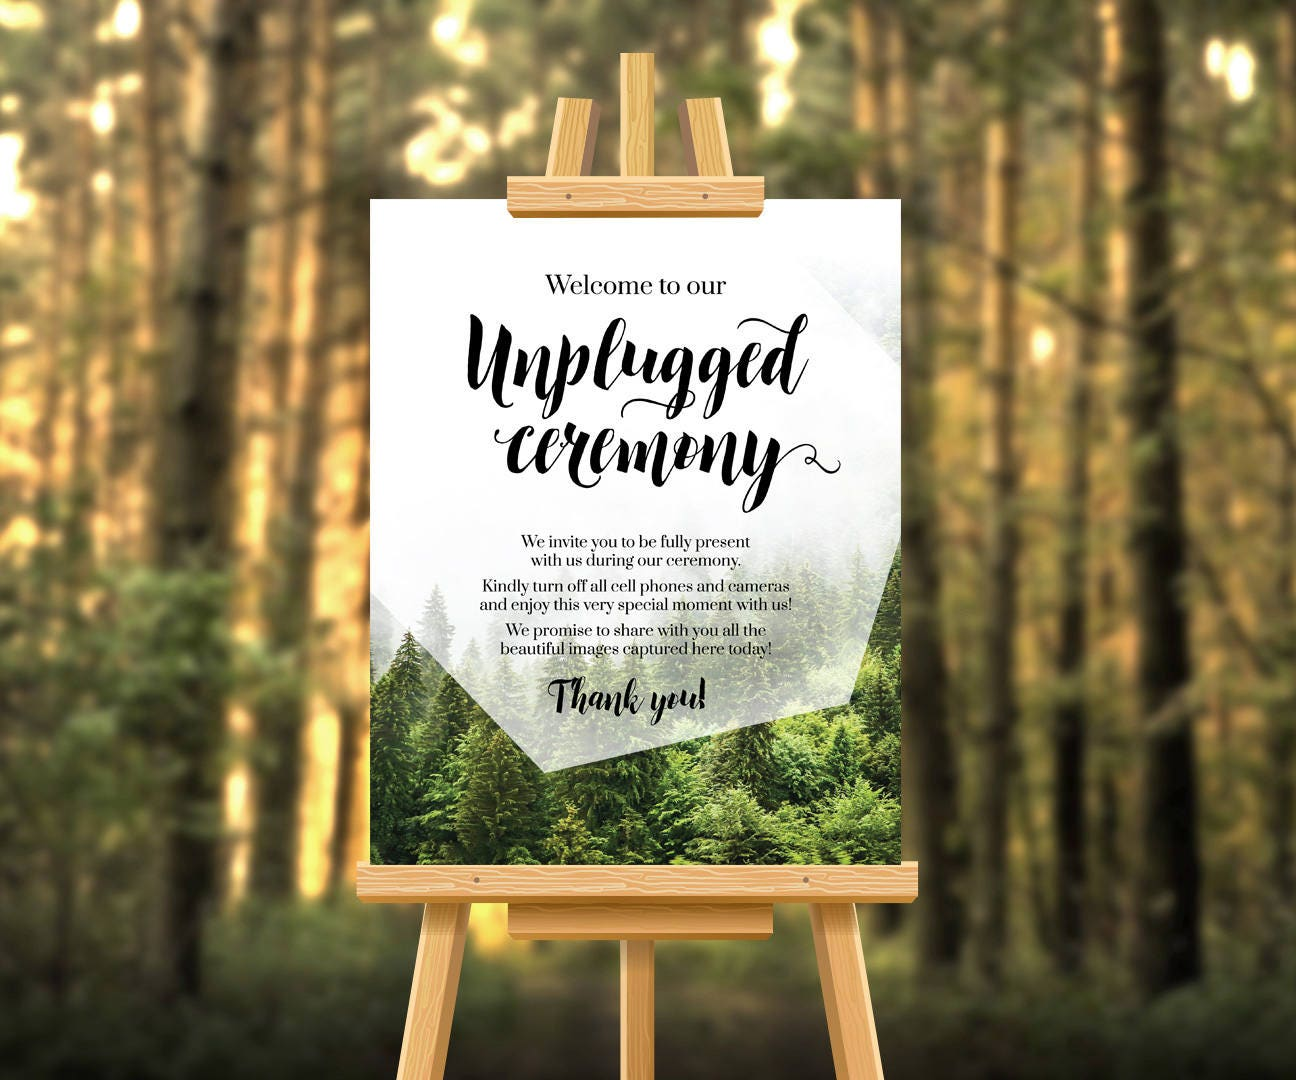 unplugged wedding sign unplugged ceremony forest wedding forest theme no phones ceremony